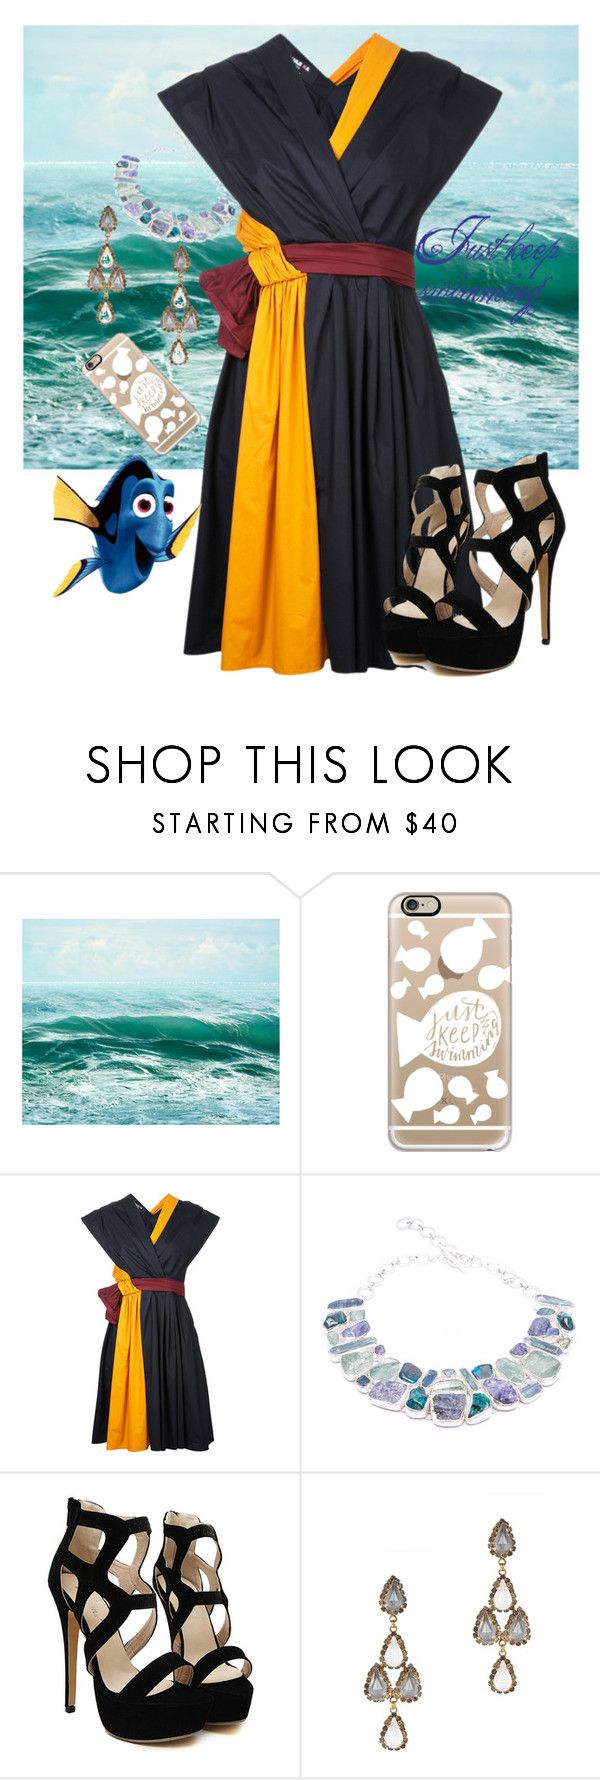 """""""Dory (Formal)"""" by vintage-wine ❤ liked on Polyvore featuring Casetify, Paule Ka, Poppy Jewellery and Erickson Beamon"""